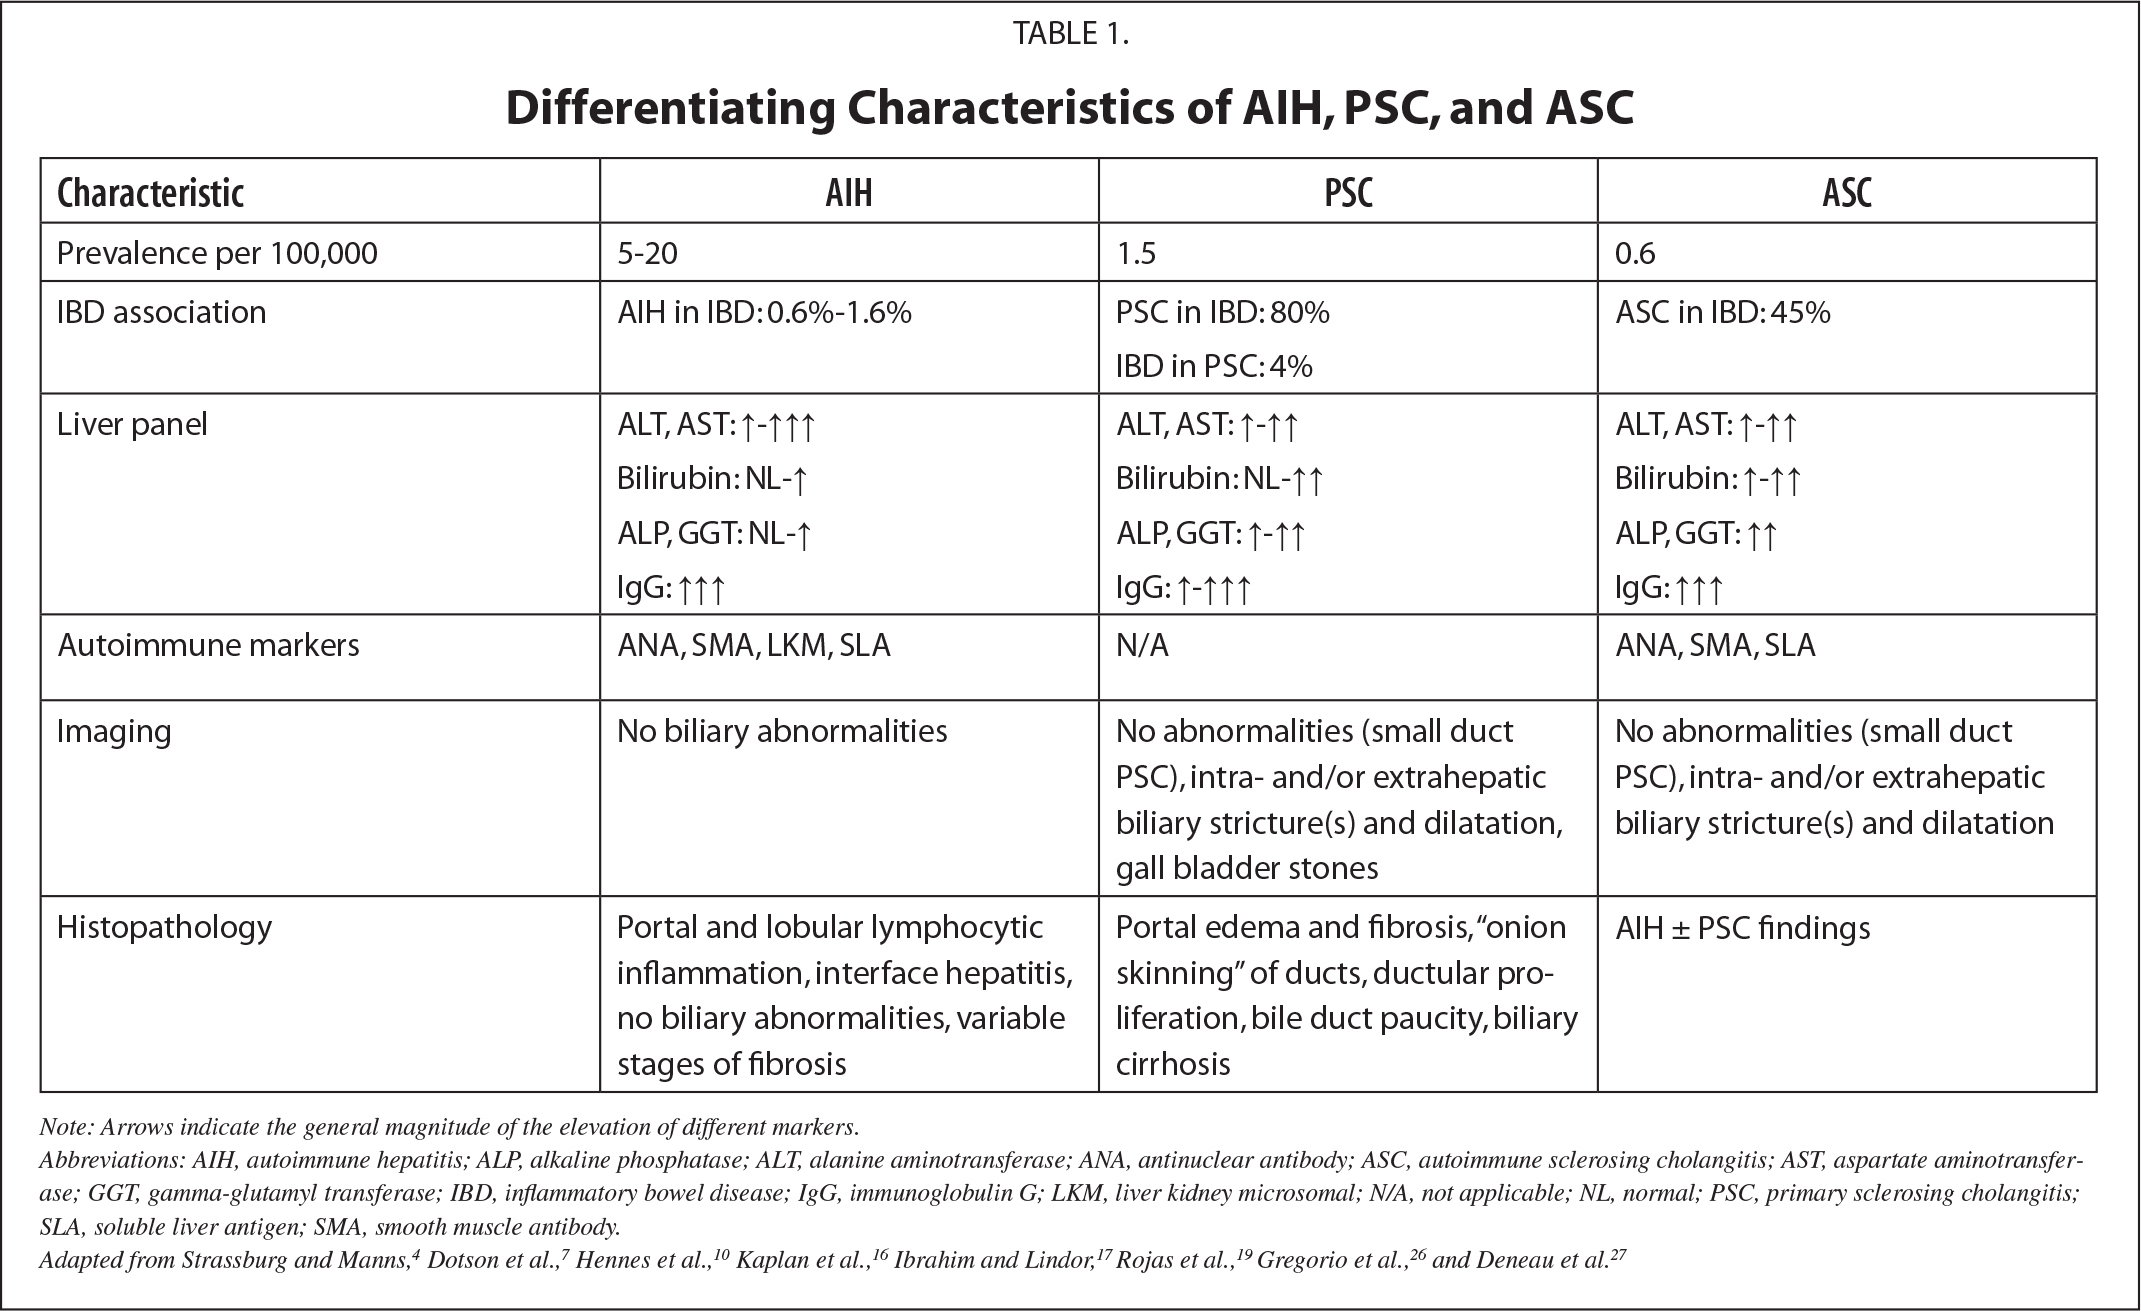 Differentiating Characteristics of AIH, PSC, and ASC